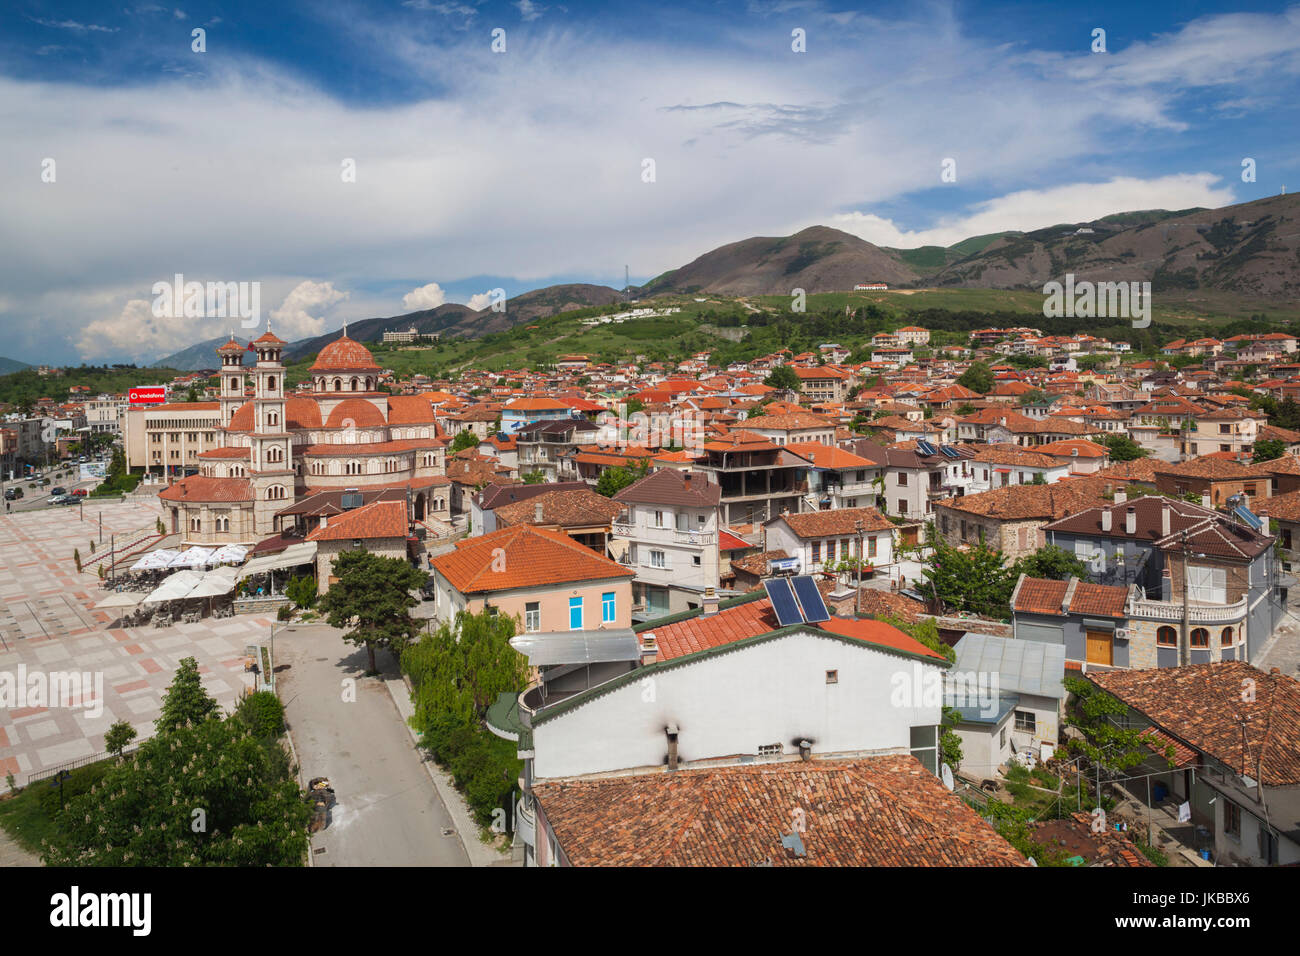 Albania, Korca, the Orthodox Cathedral, elevated view along the Boulevard Republika - Stock Image